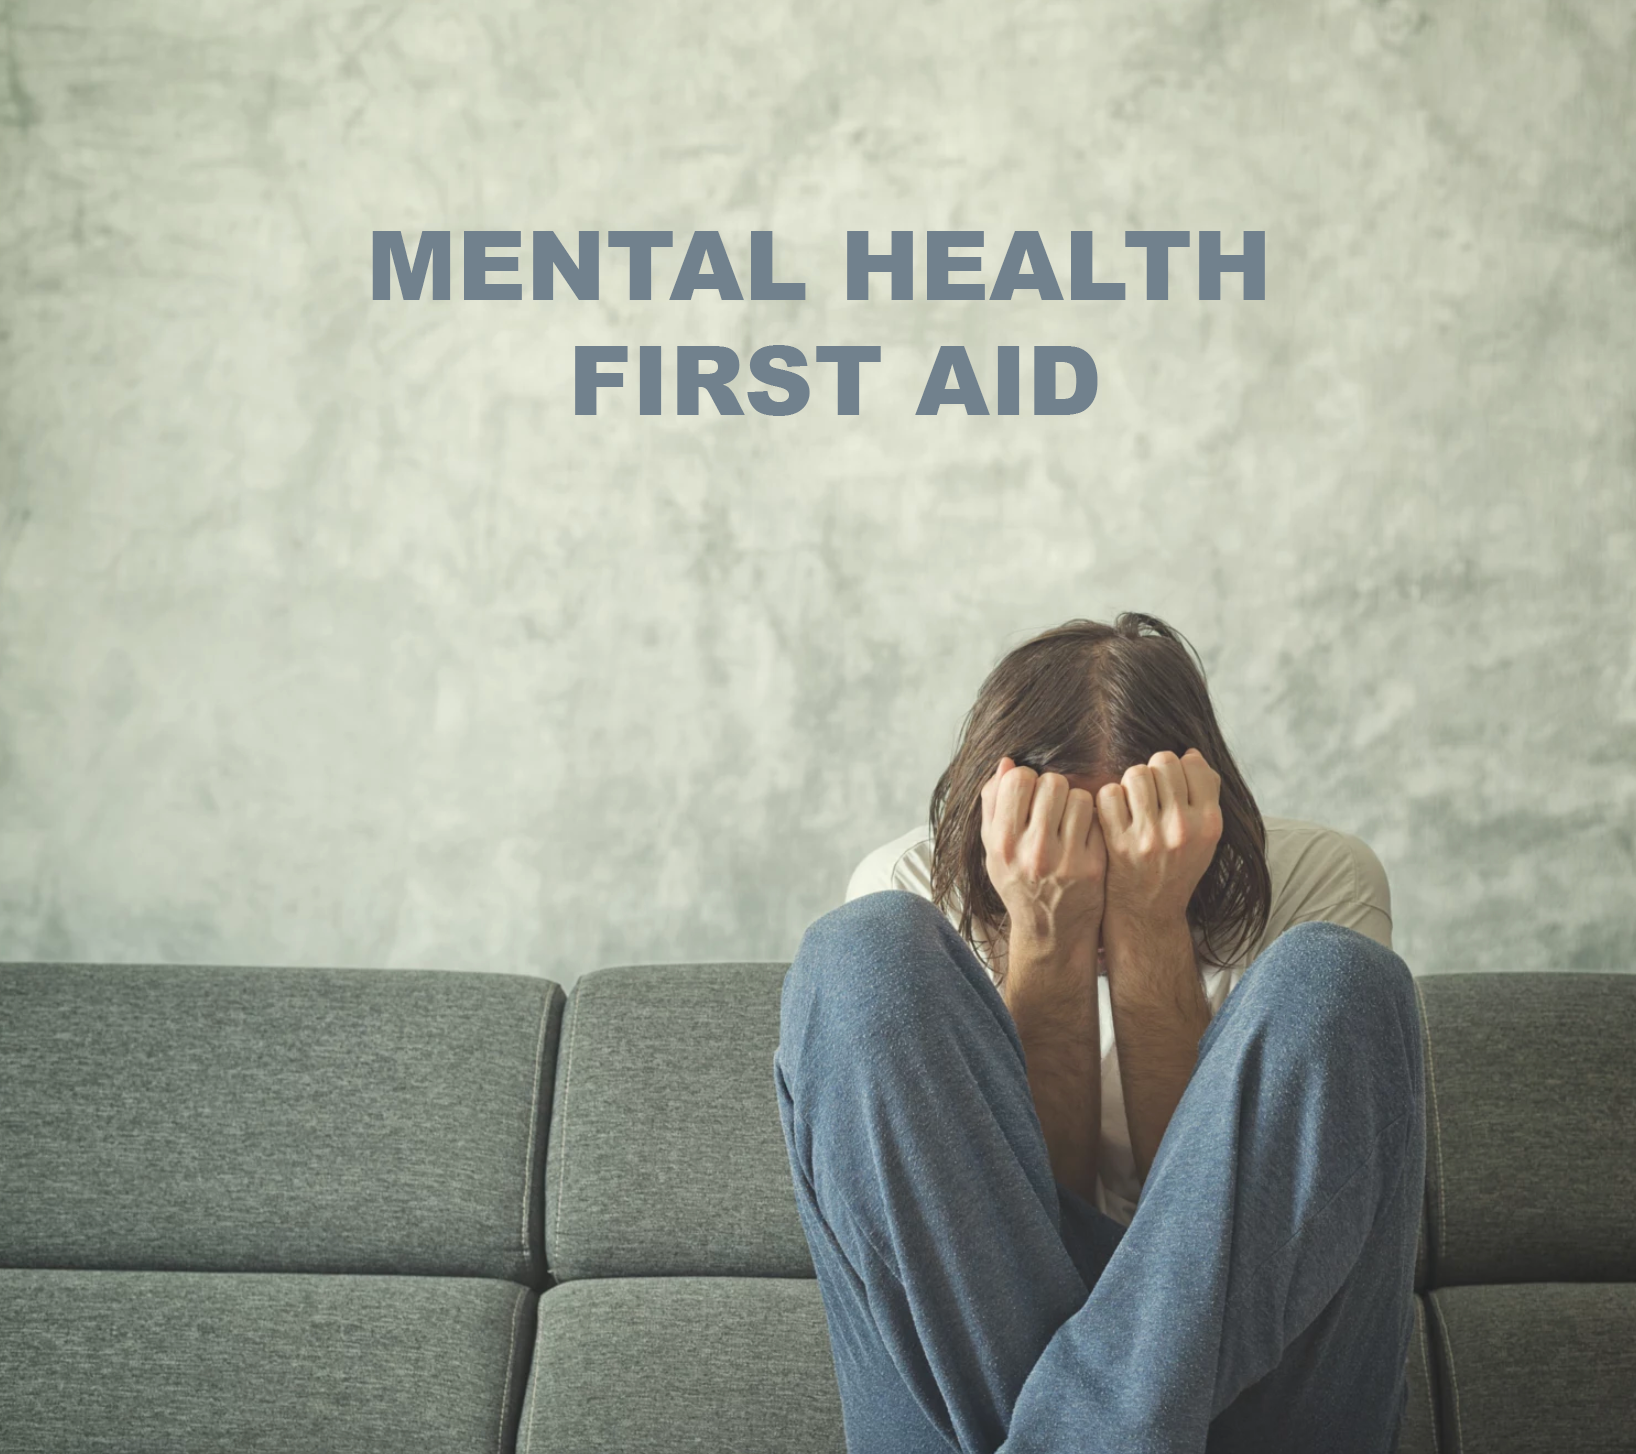 Did you know: 1 in 4 adults will experience mental health problems in any one year. In this two day course you will learn to recognise early signs of mental health problems and respond appropriately to assist people in your community, family or workplace.